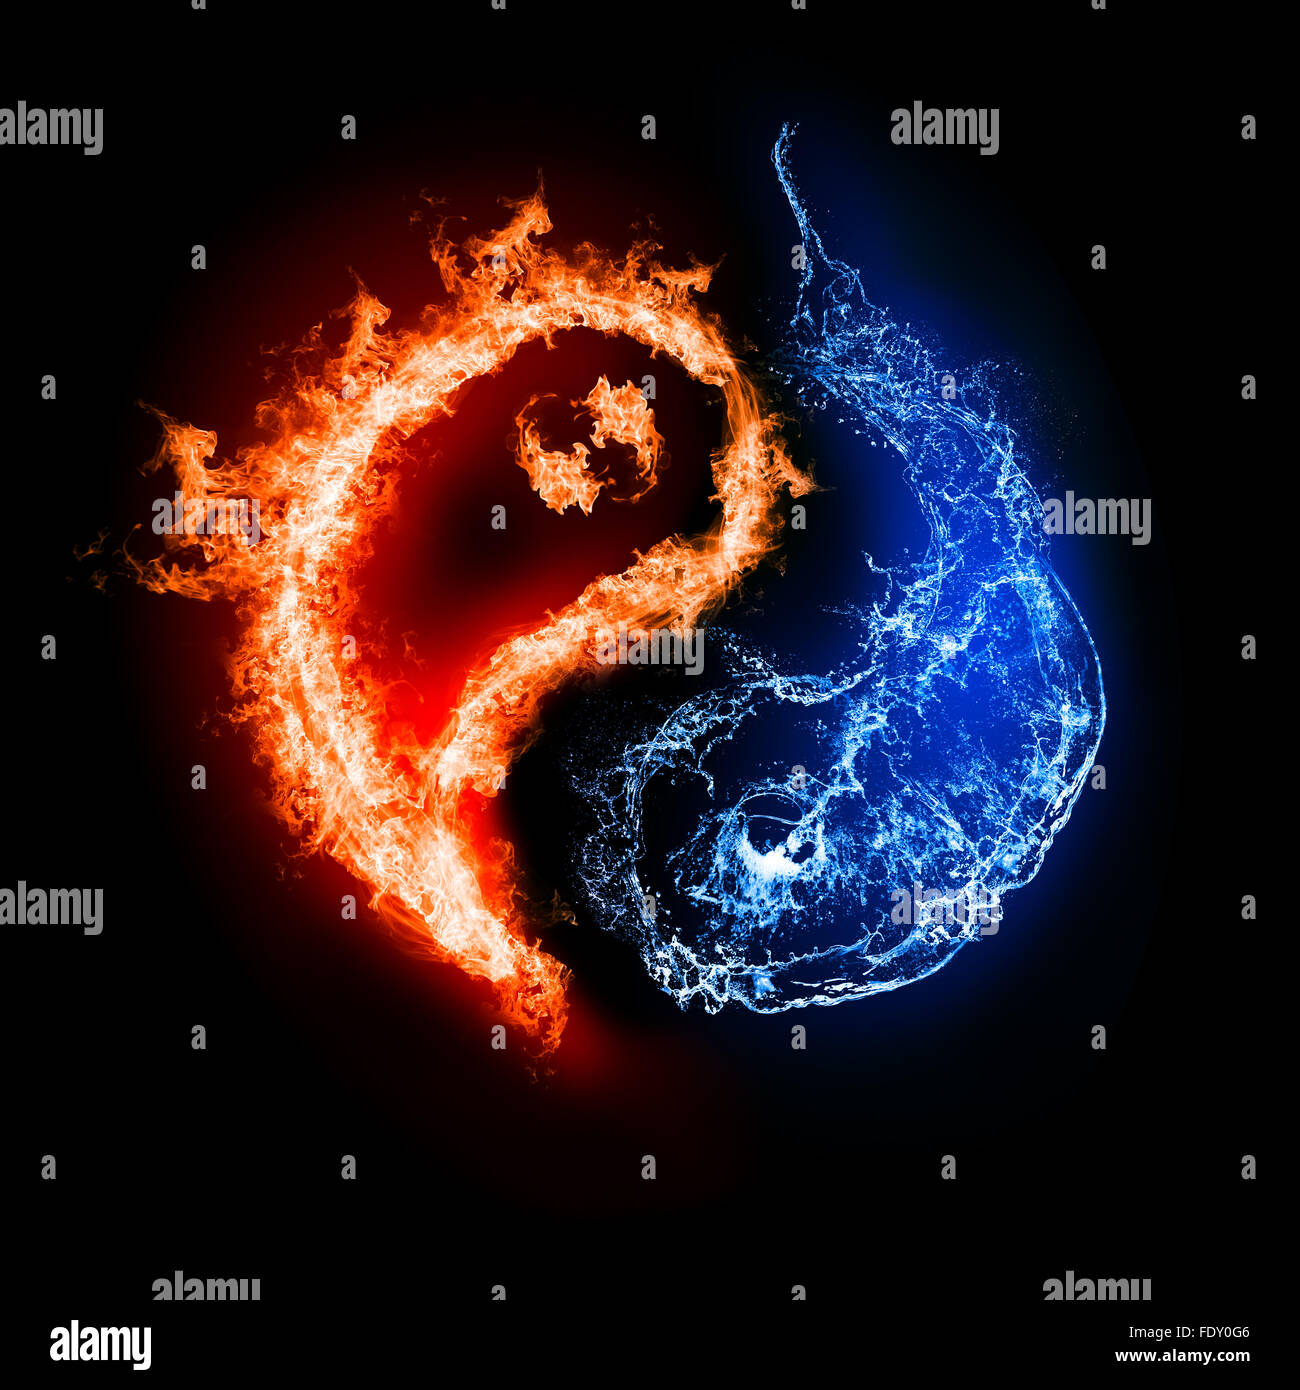 Symbol Of Yin And Yang Of The Dark Background In The Form Of Fire